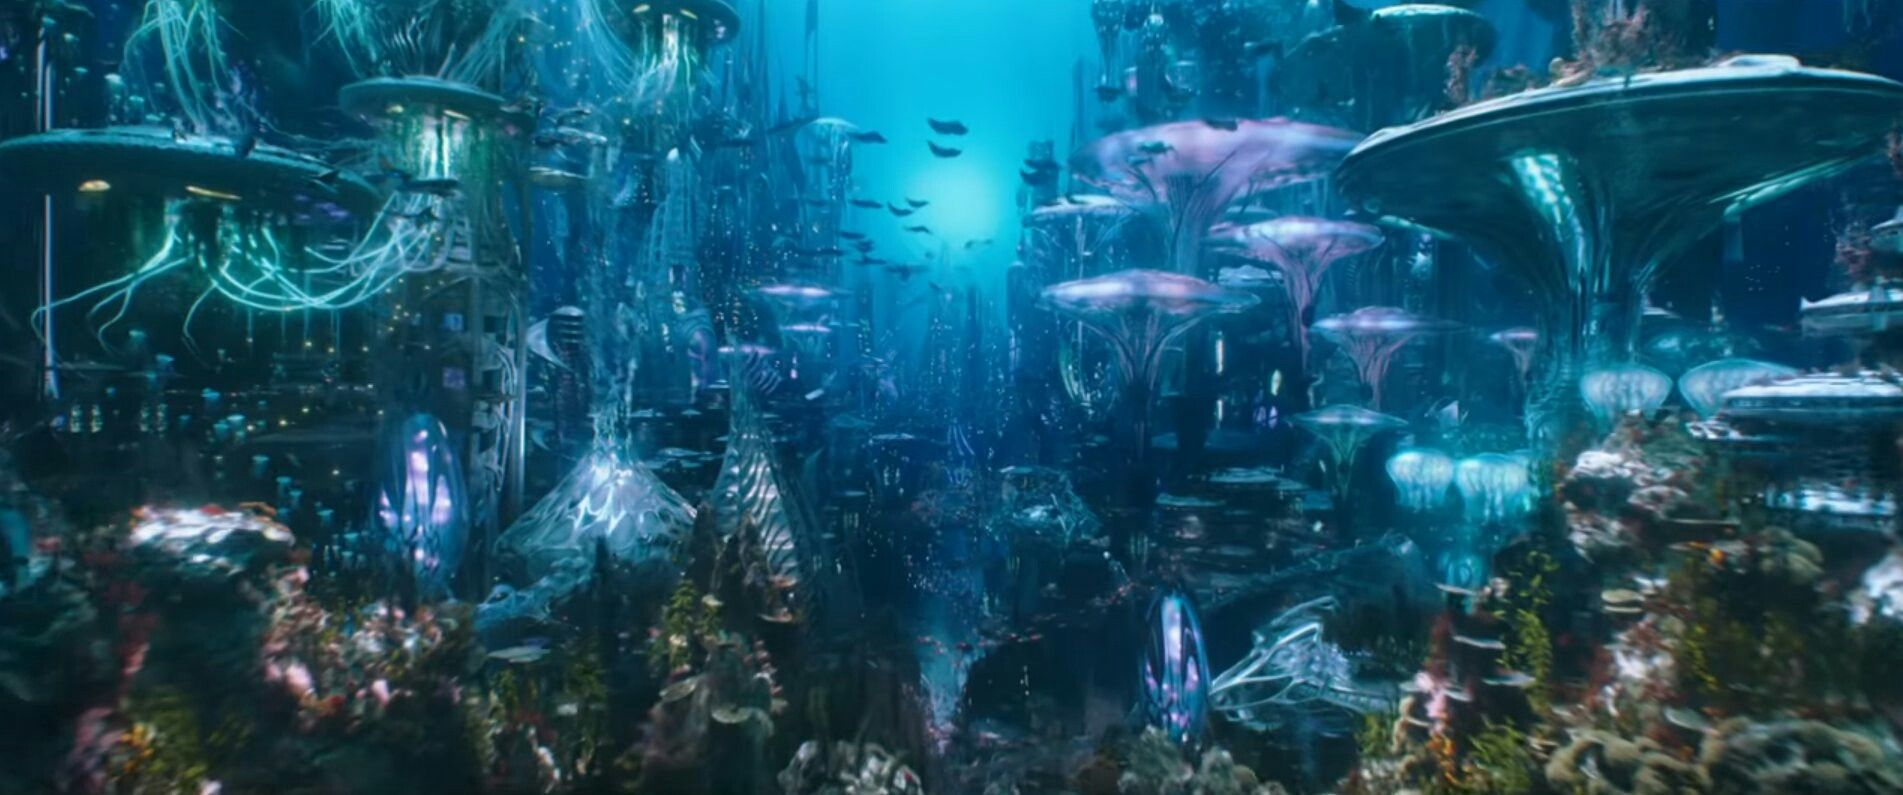 Image result for aquaman movie screenshots atlantis